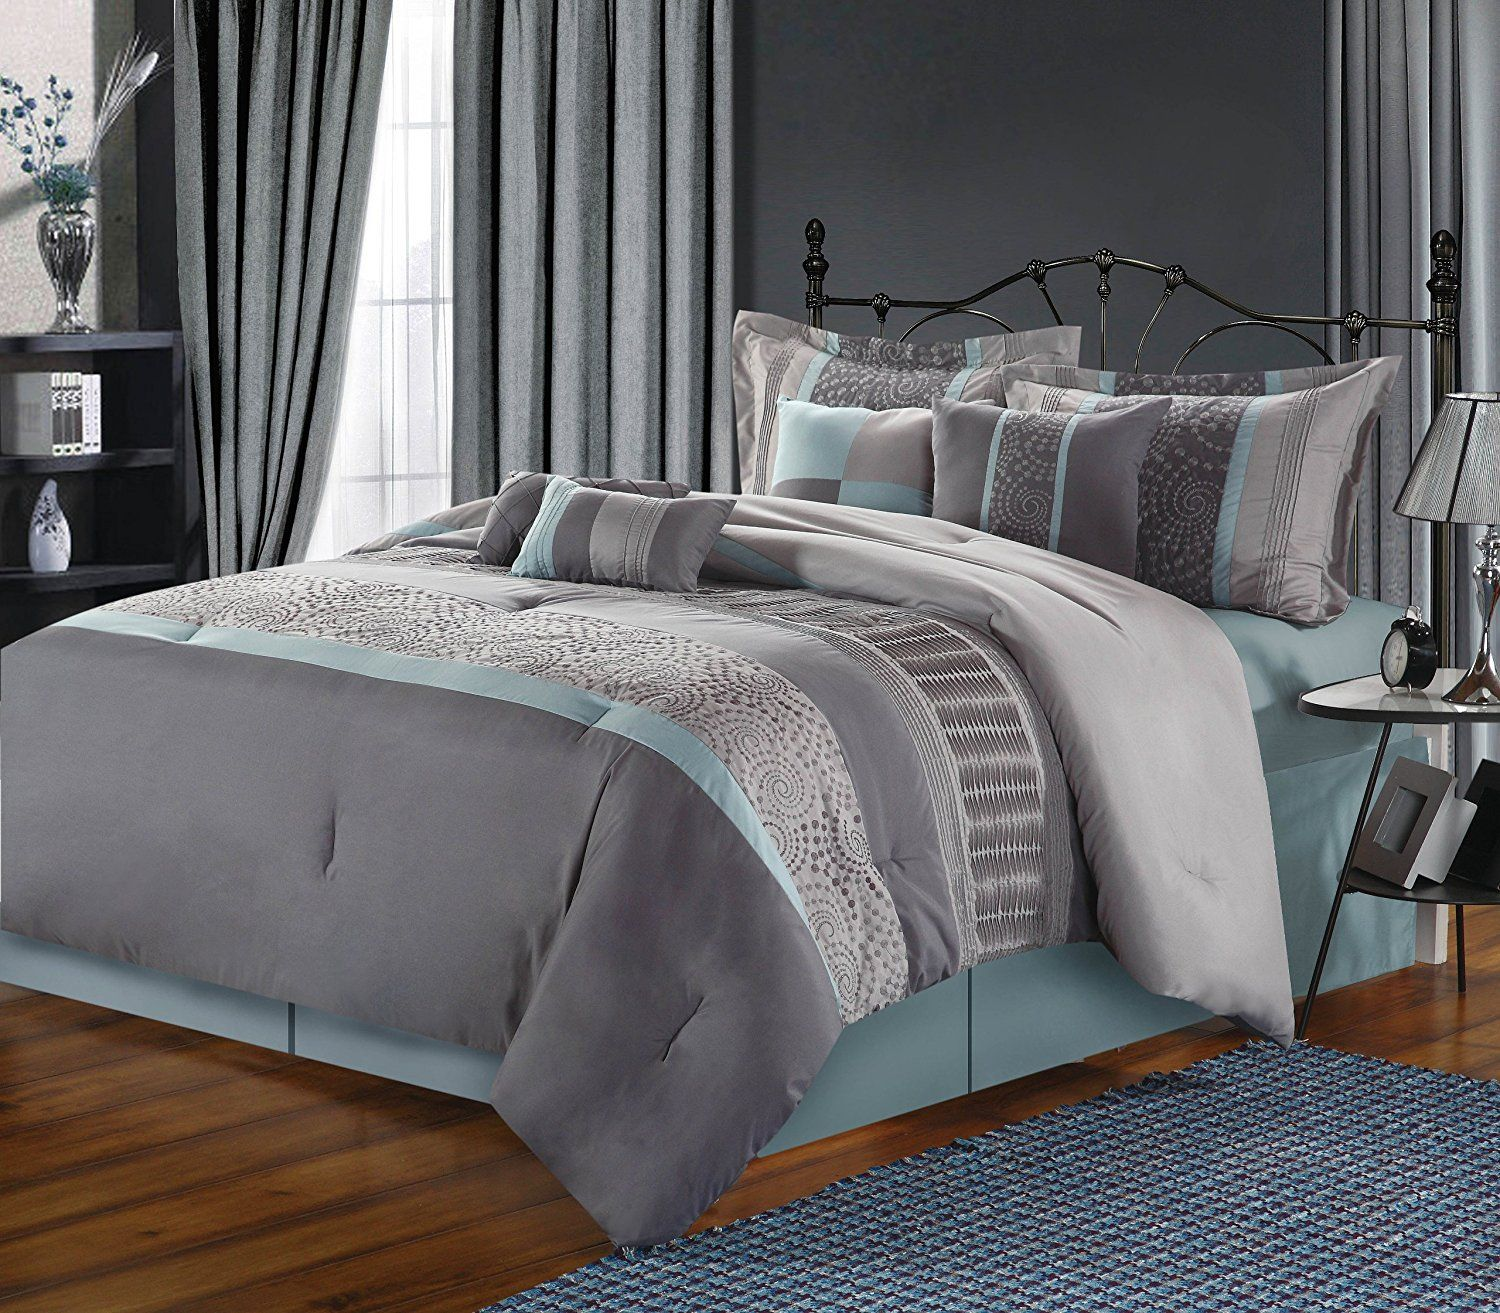 Chic home piece euphoria embroidered comforter set queen grey